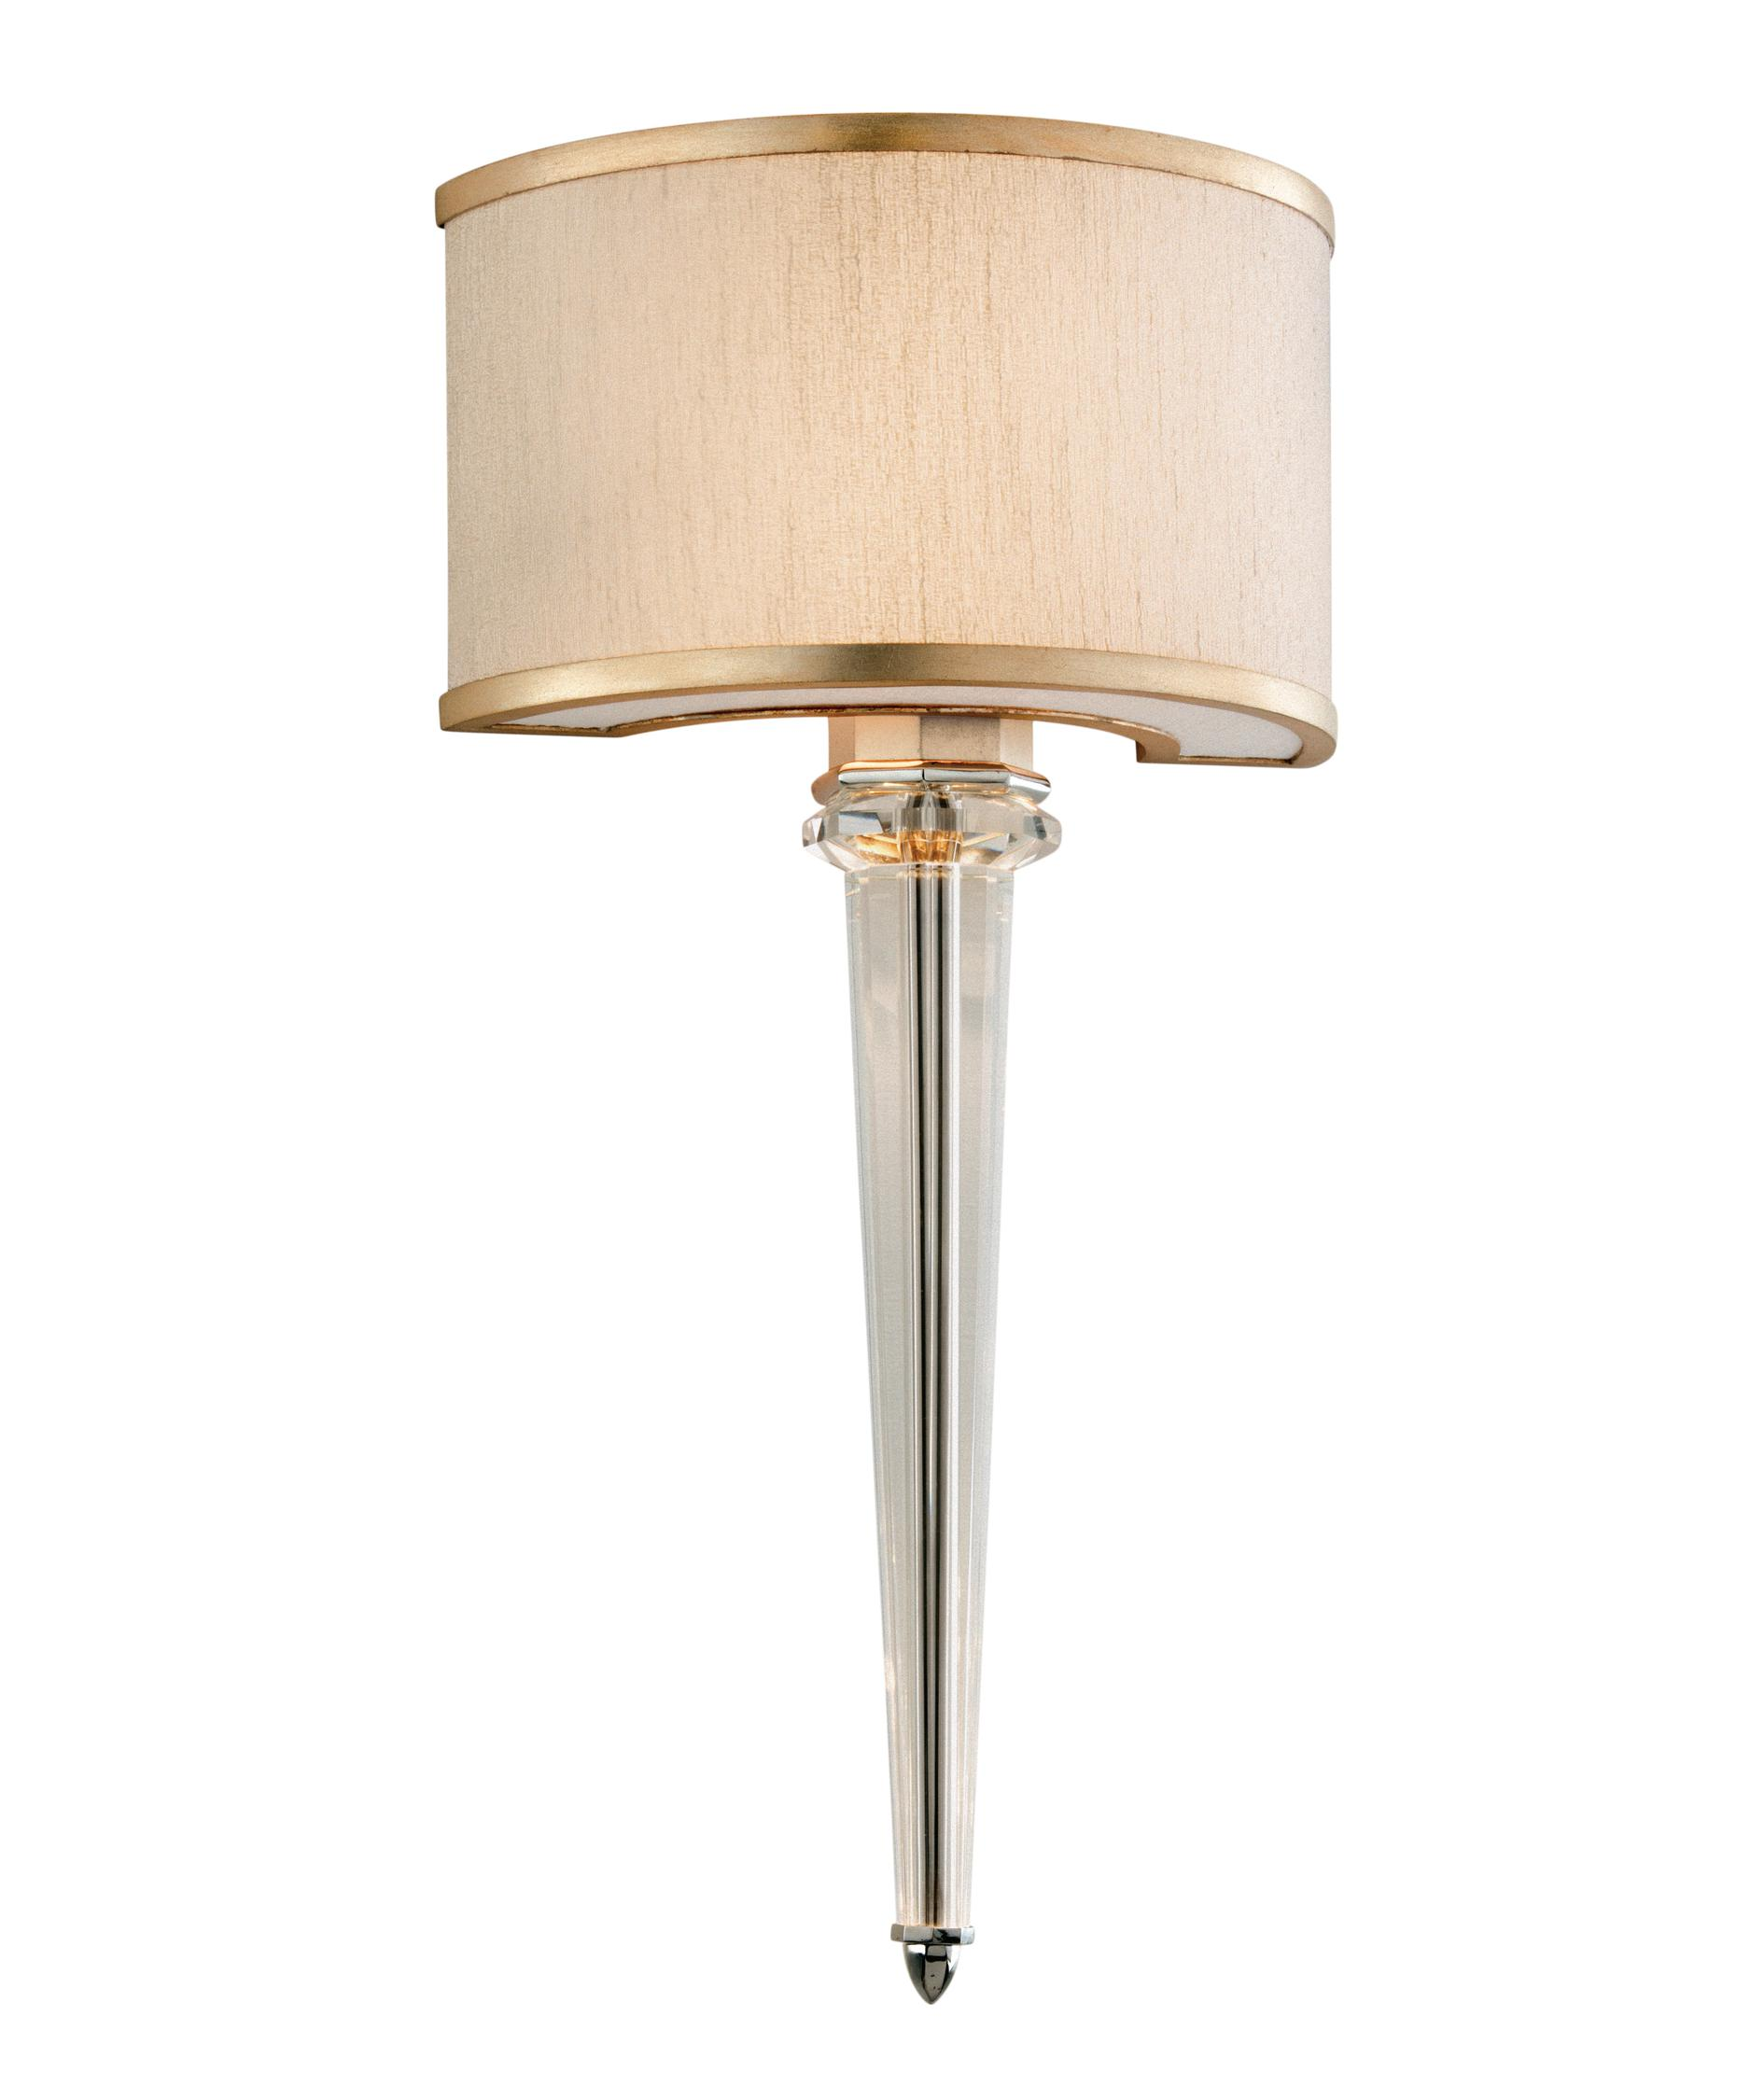 shown in tranquility silver leaf finish hardback ivory ice shade and crystal column accent - Corbett Lighting